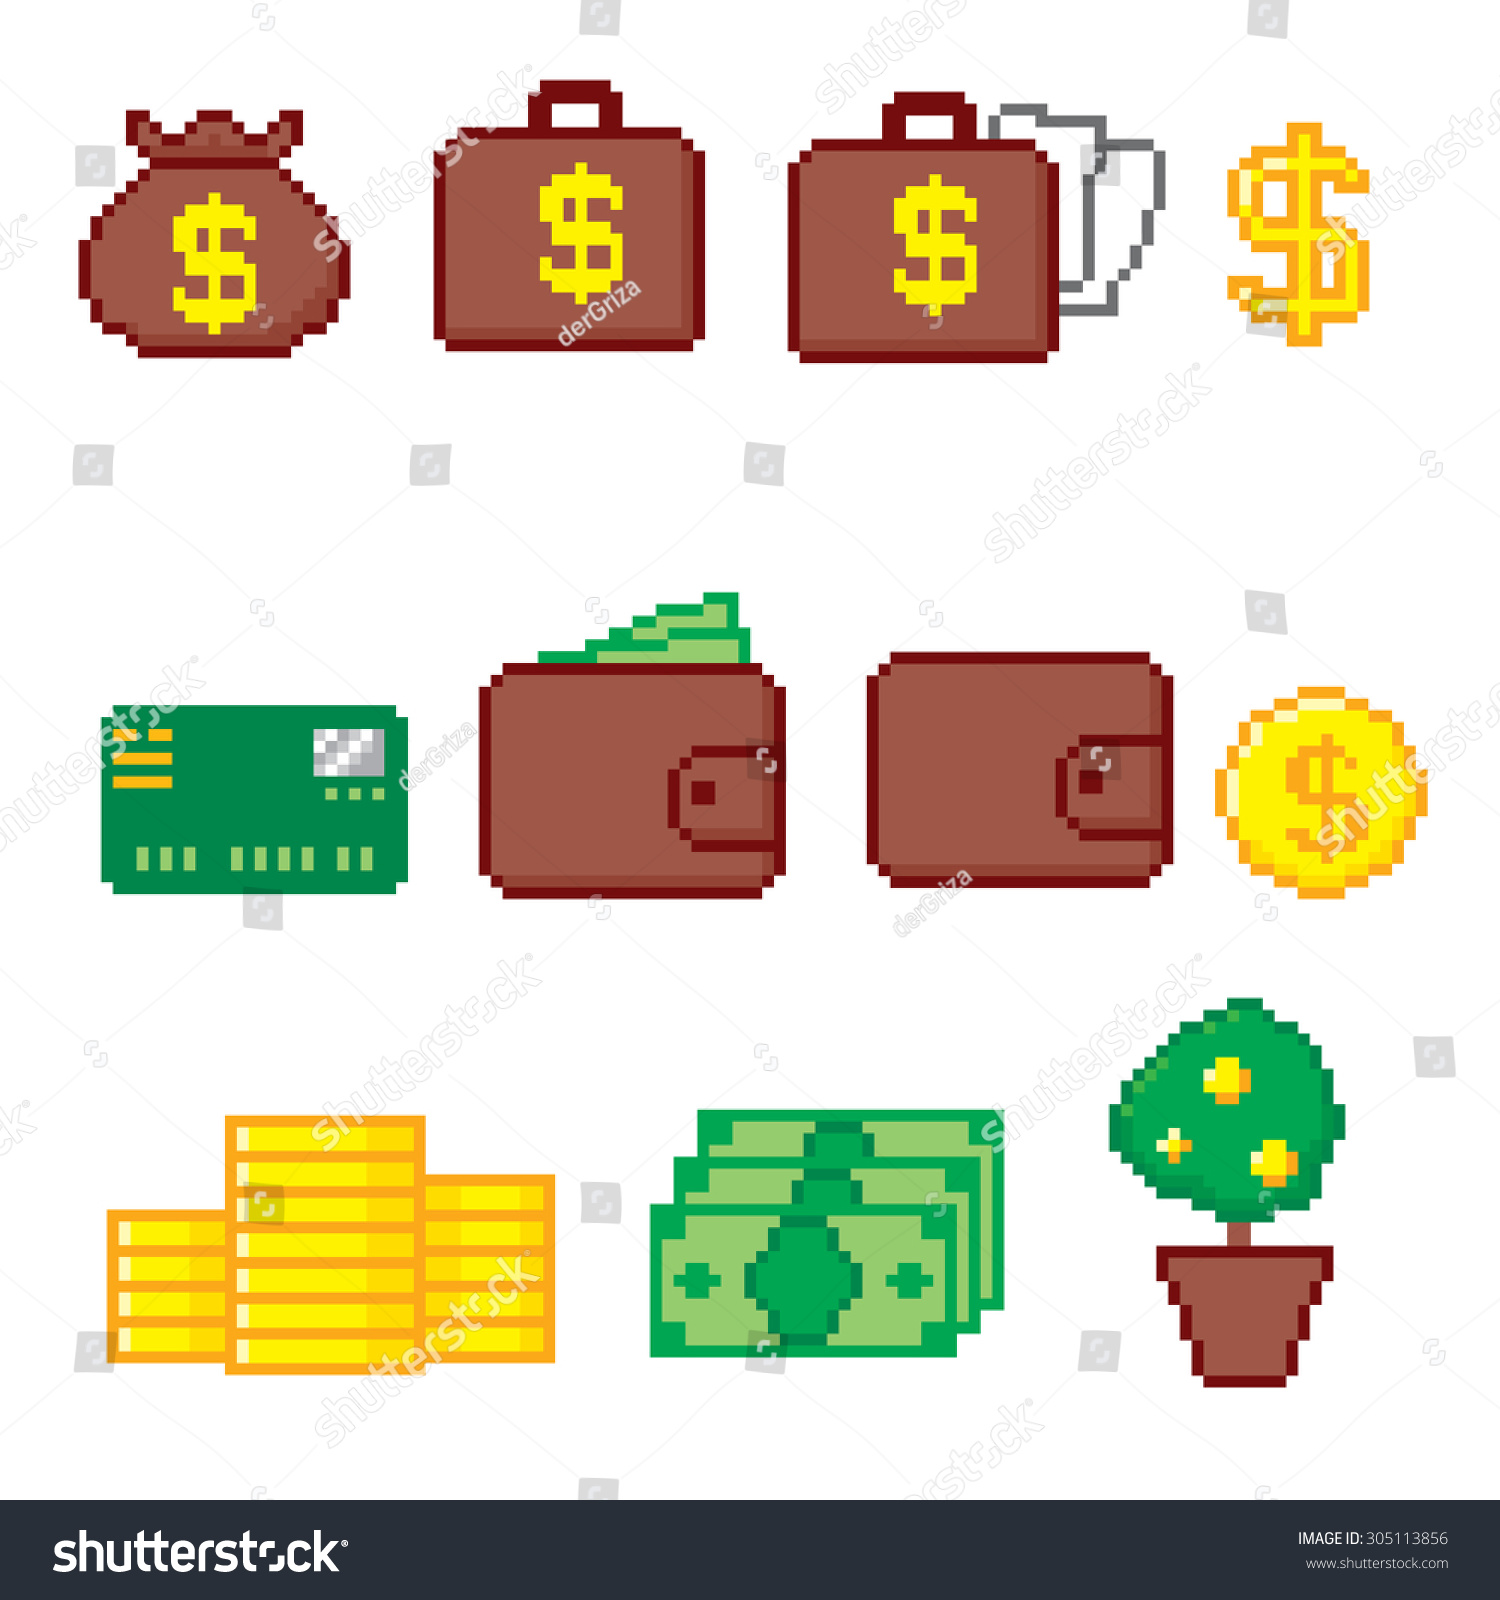 Business and finance icon set Pixel art Old school computer graphic style